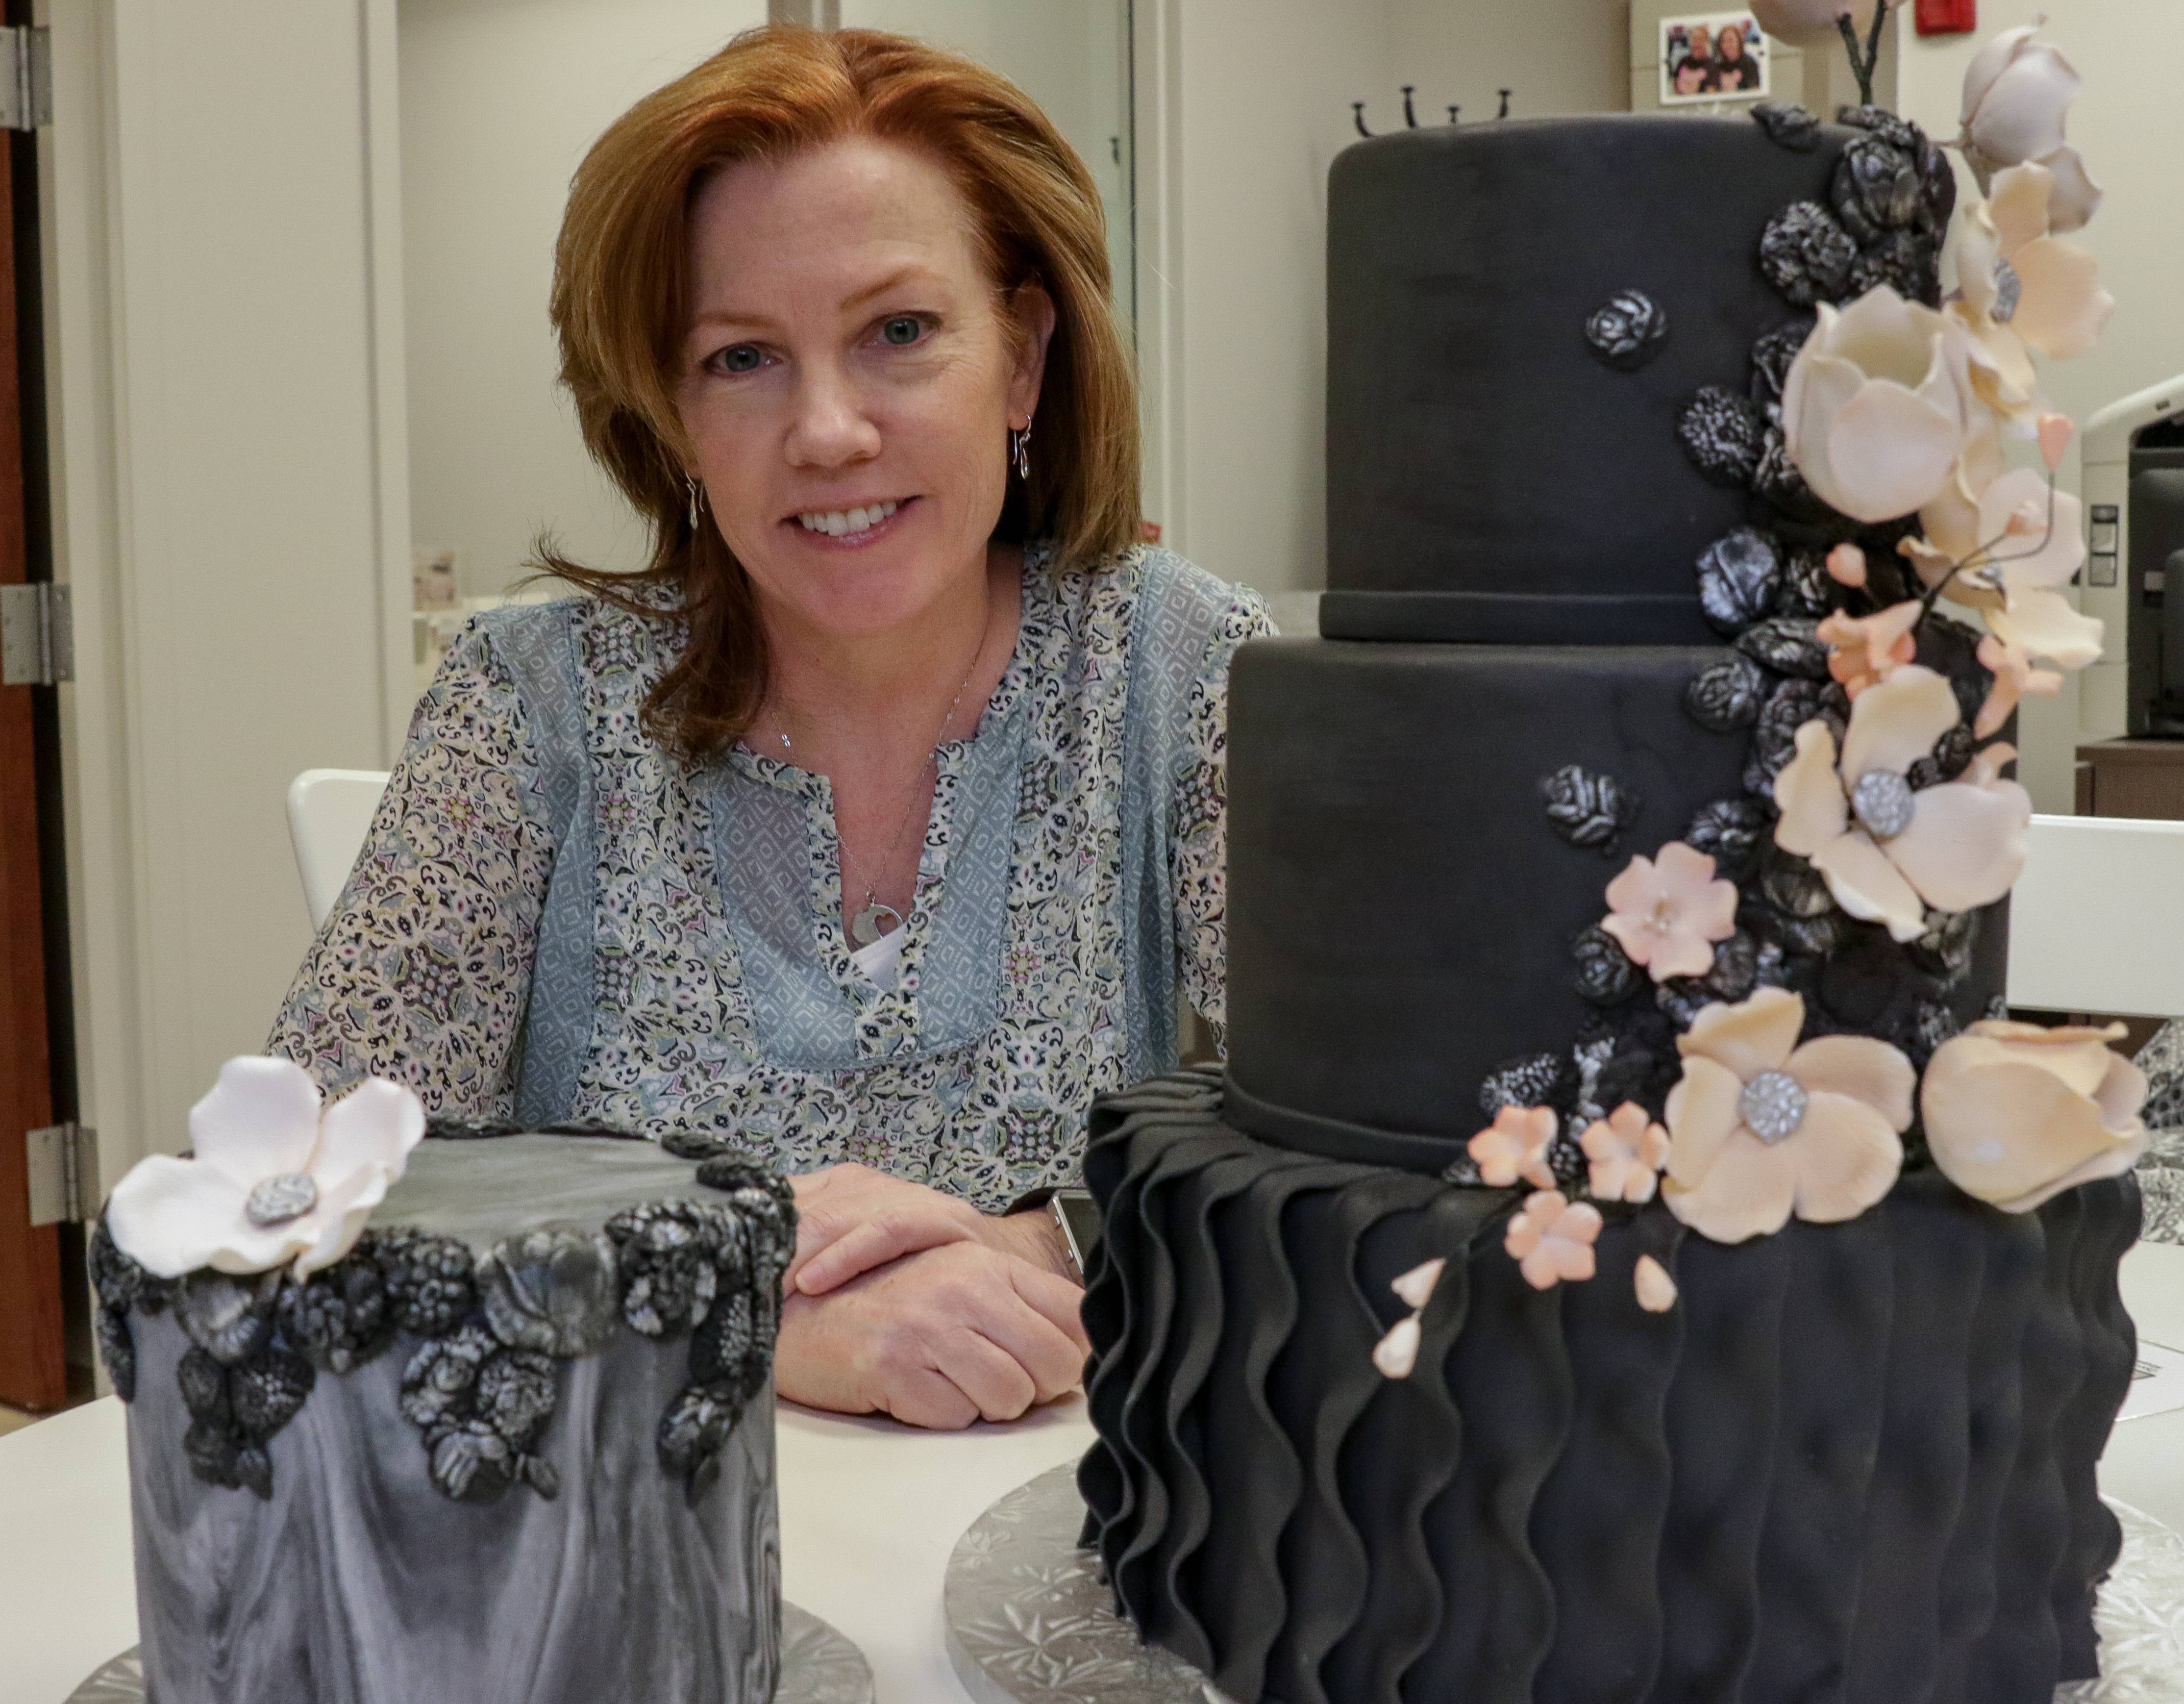 Beth Fahey owns the new Creative Cakes Design Studio in Naperville with her sister, Becky Palermo. The design center opened last week as a consultation location for Creative Cakes Bakery & Cafe in Tinley Park, which the sisters have owned since 2003.